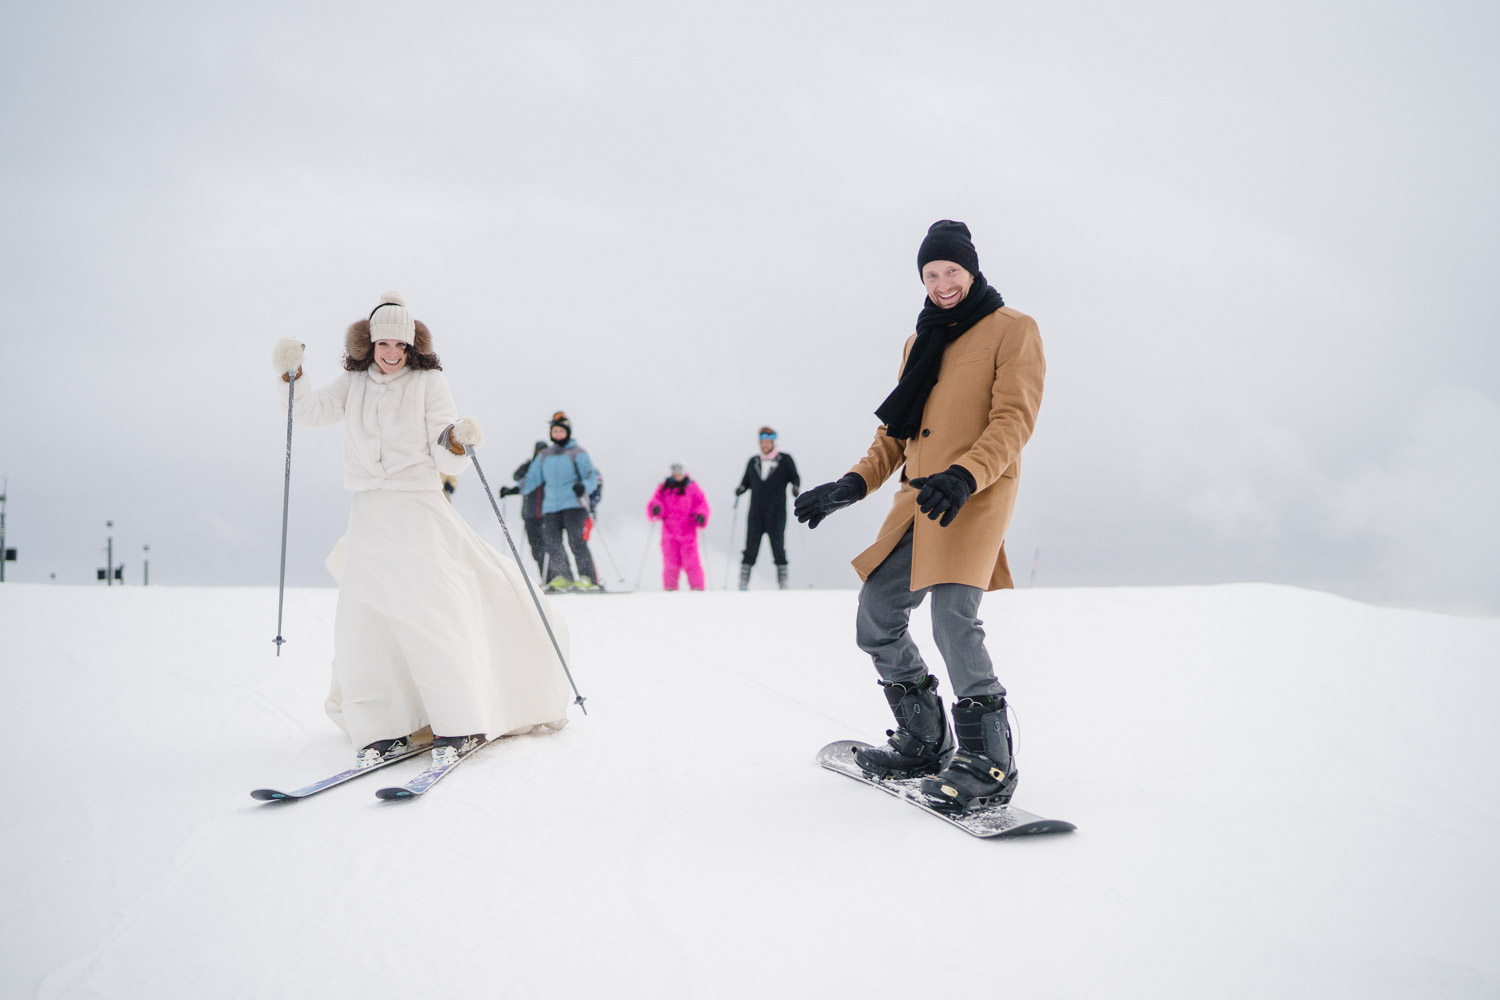 skiing bride with snowboarding groom on snowy mountain